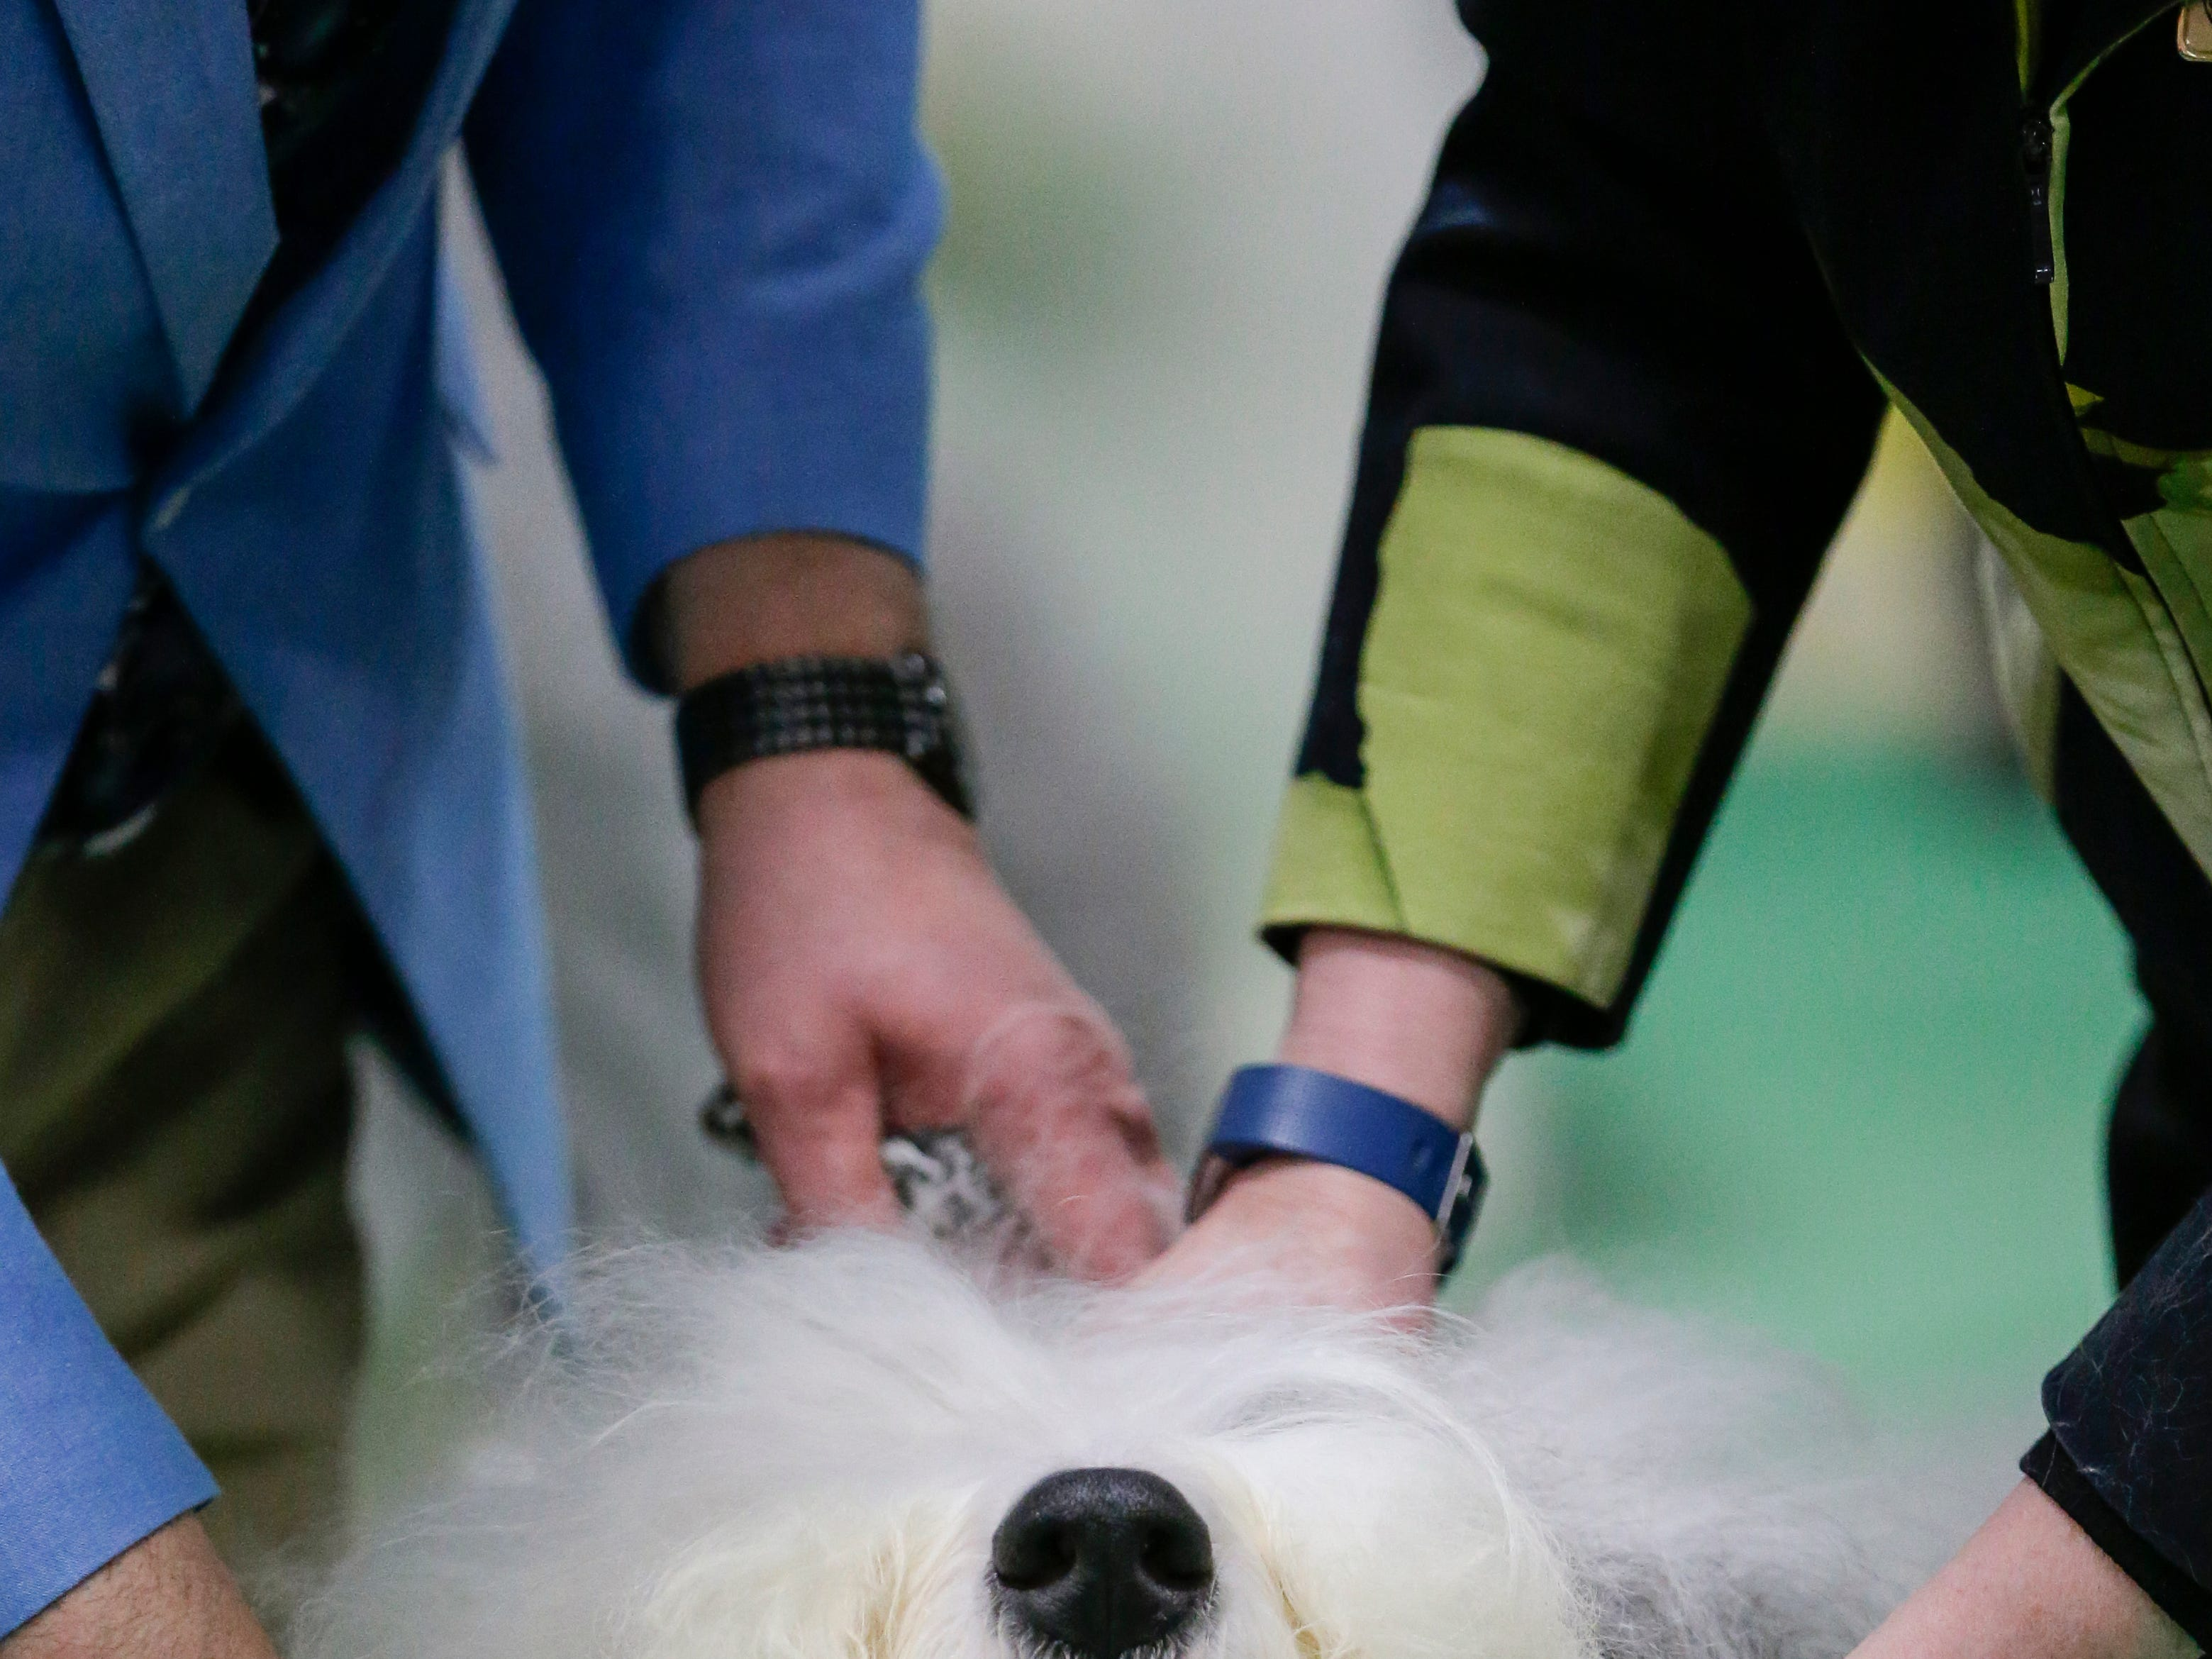 An Old English sheepdog named Jazzy gets examined by judge Heather Langfeld during the Northeast Wisconsin Dog Show Classic Friday, Mar. 30, 2018, in Manitowoc, Wis. Josh Clark/USA TODAY NETWORK-Wisconsin